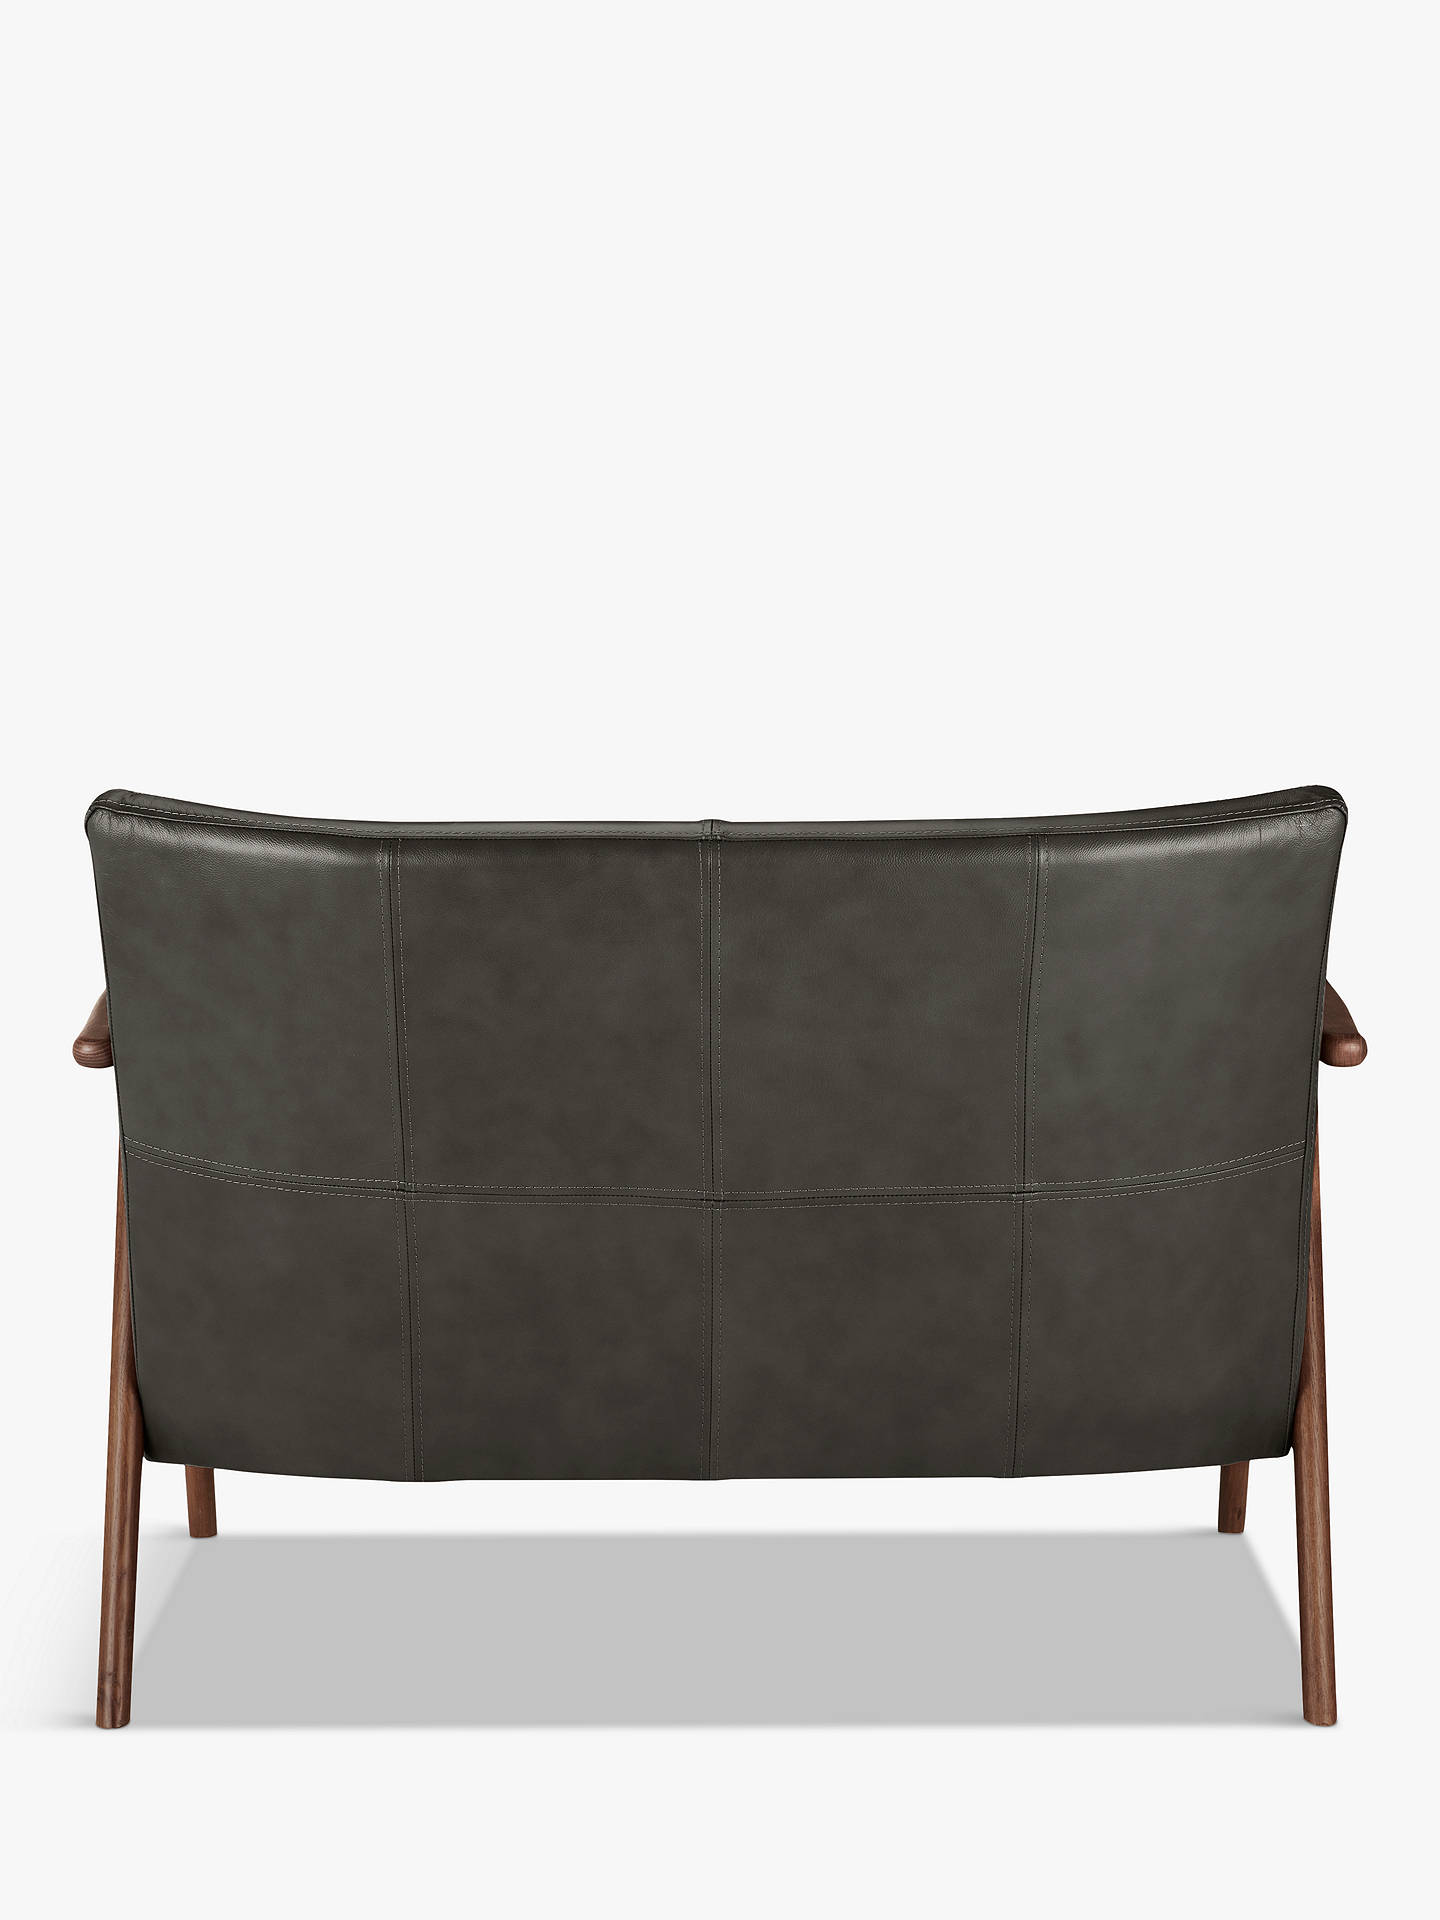 Buy John Lewis & Partners Hendricks Leather Loveseat, Dark Wood Frame, Winchester Anthracite Online at johnlewis.com